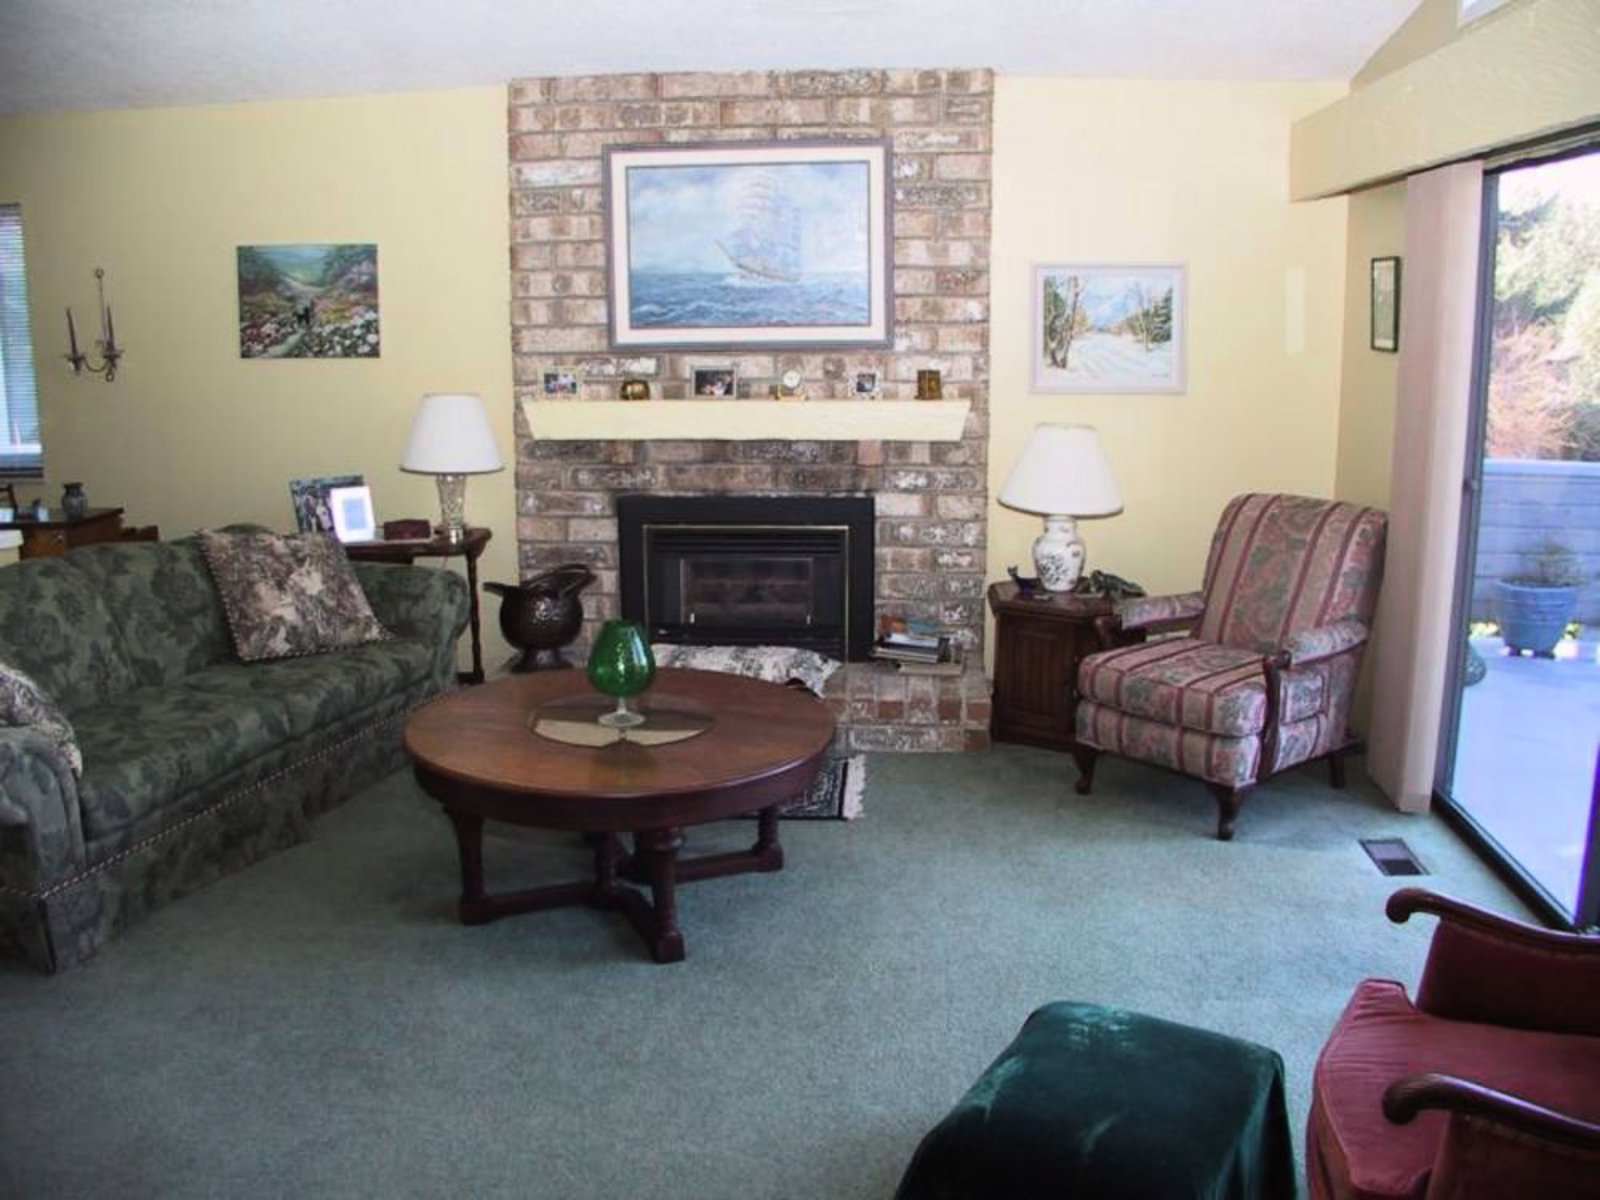 Living Room Gas fireplace, vaulted ceilings, ocean view, access to sundeck.